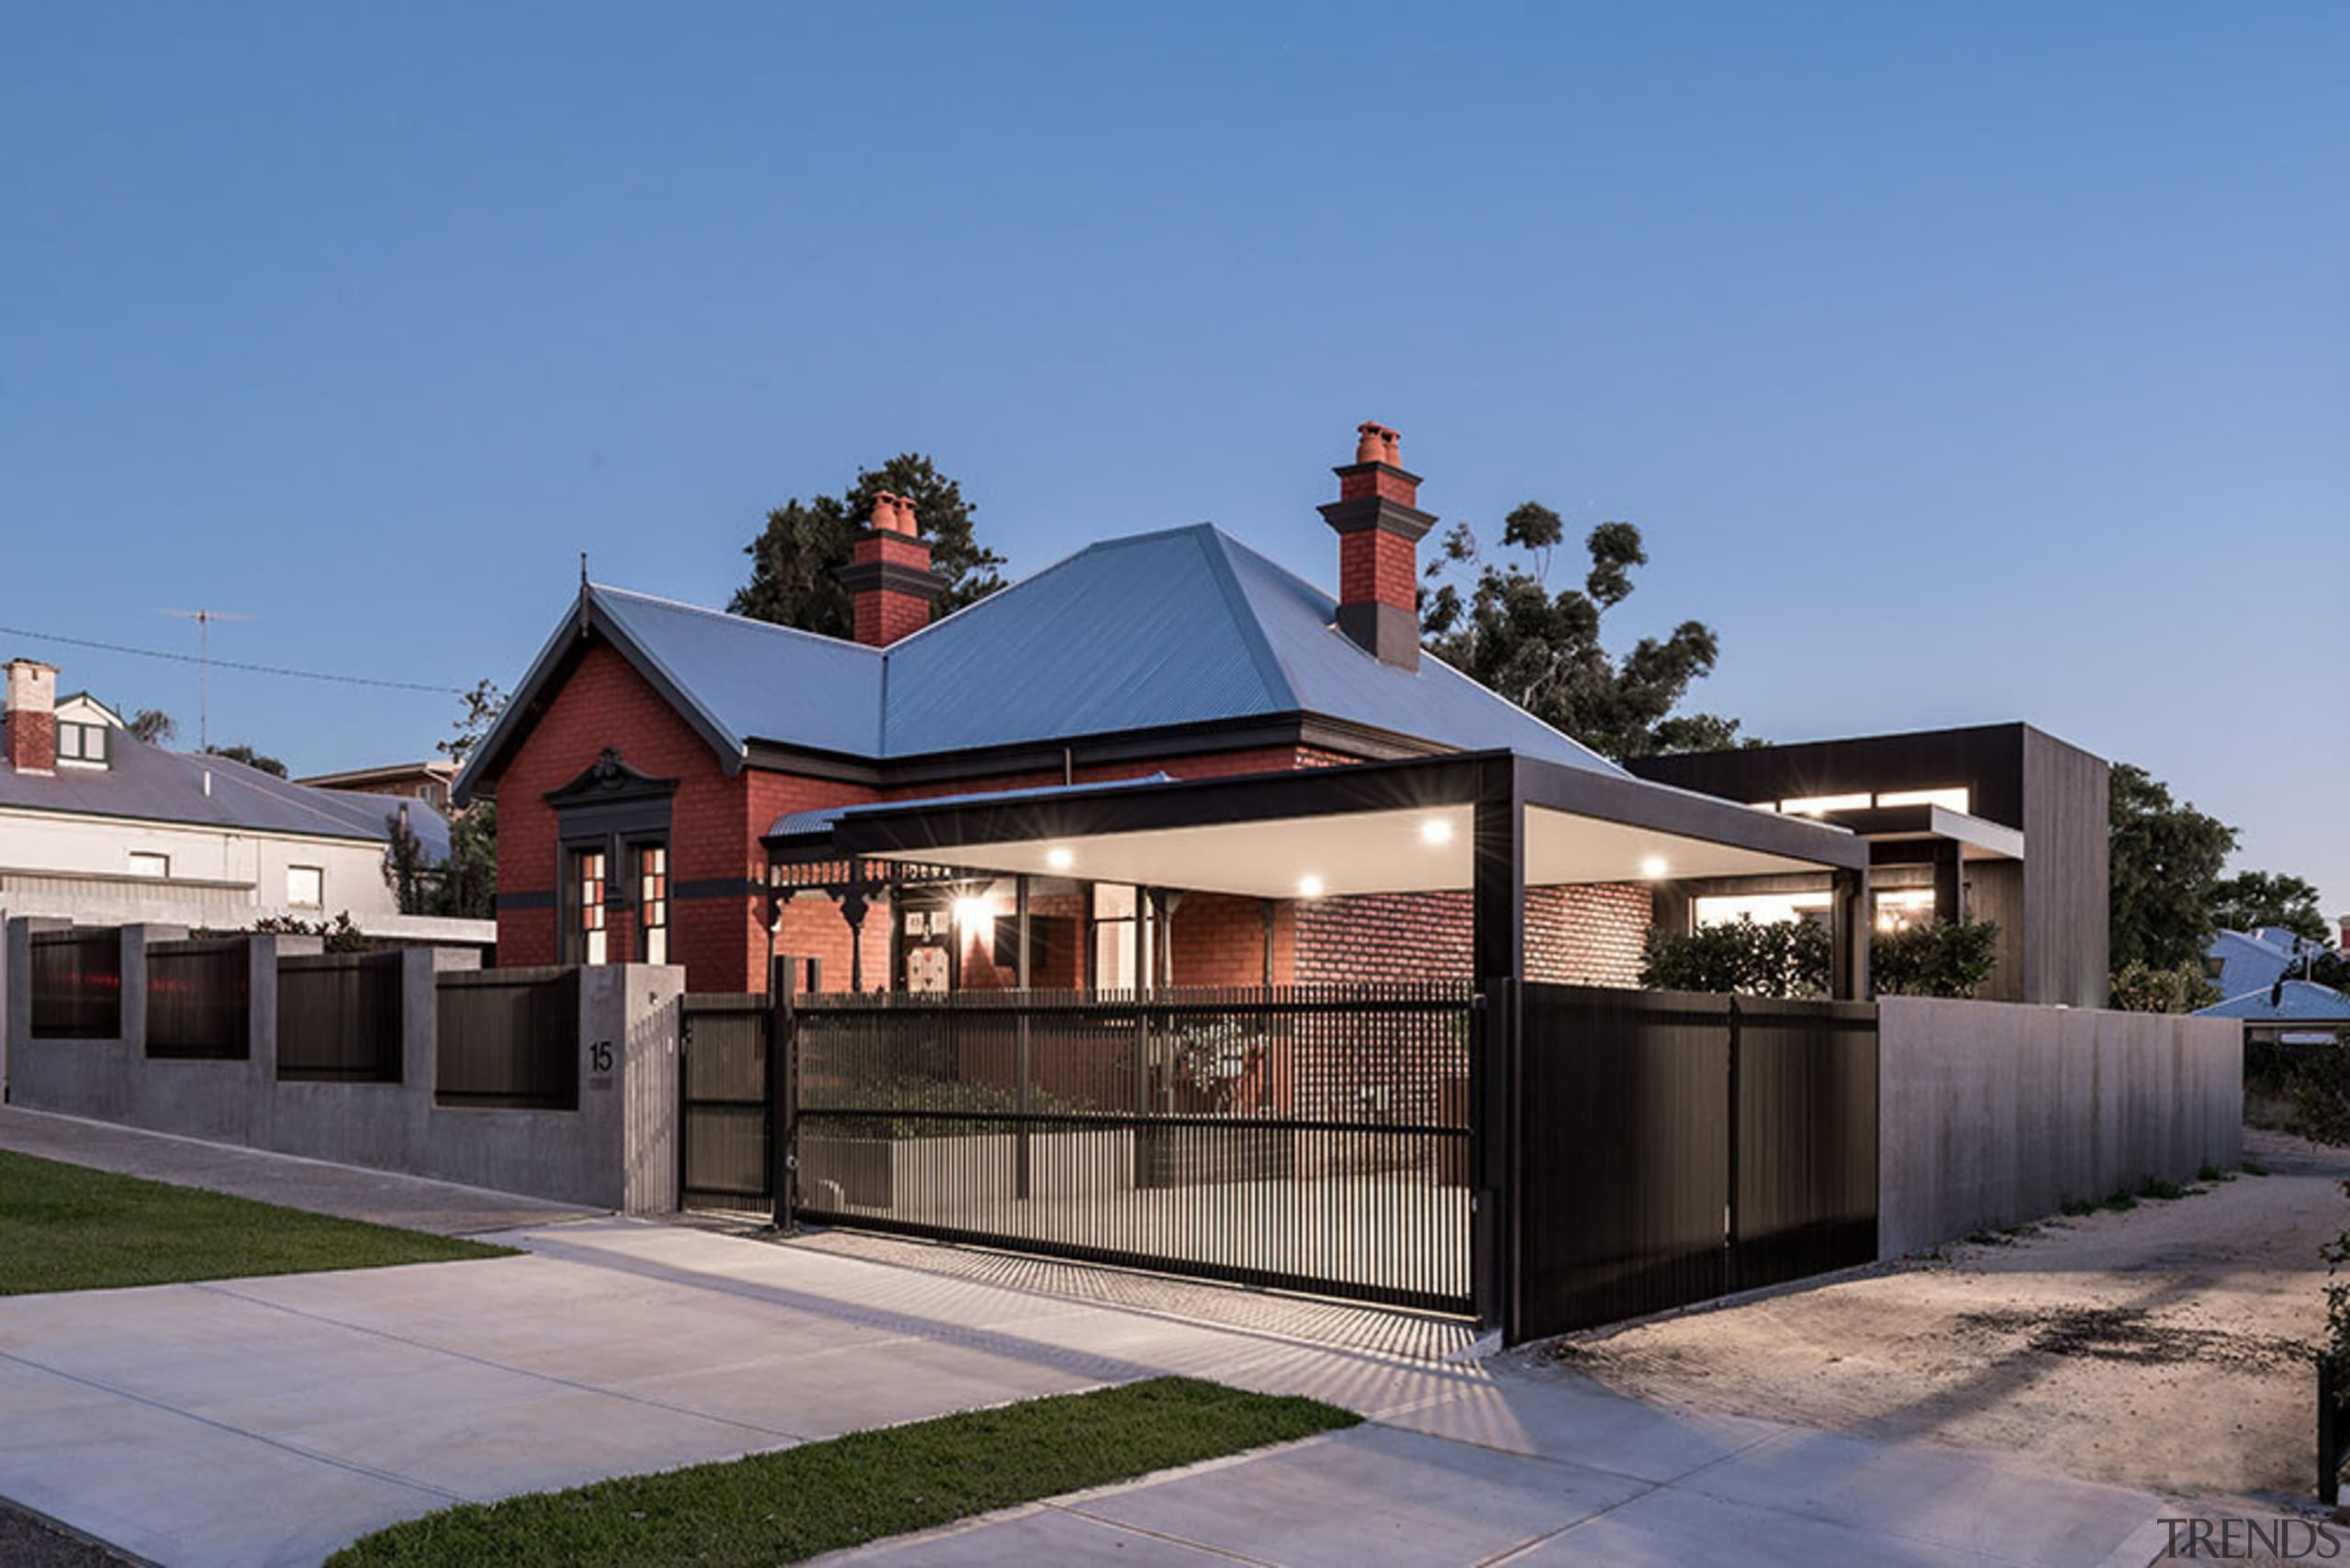 Winner: 2017 TIDA Australia Home of the YearFinalist: architecture, facade, home, house, real estate, residential area, roof, suburb, teal